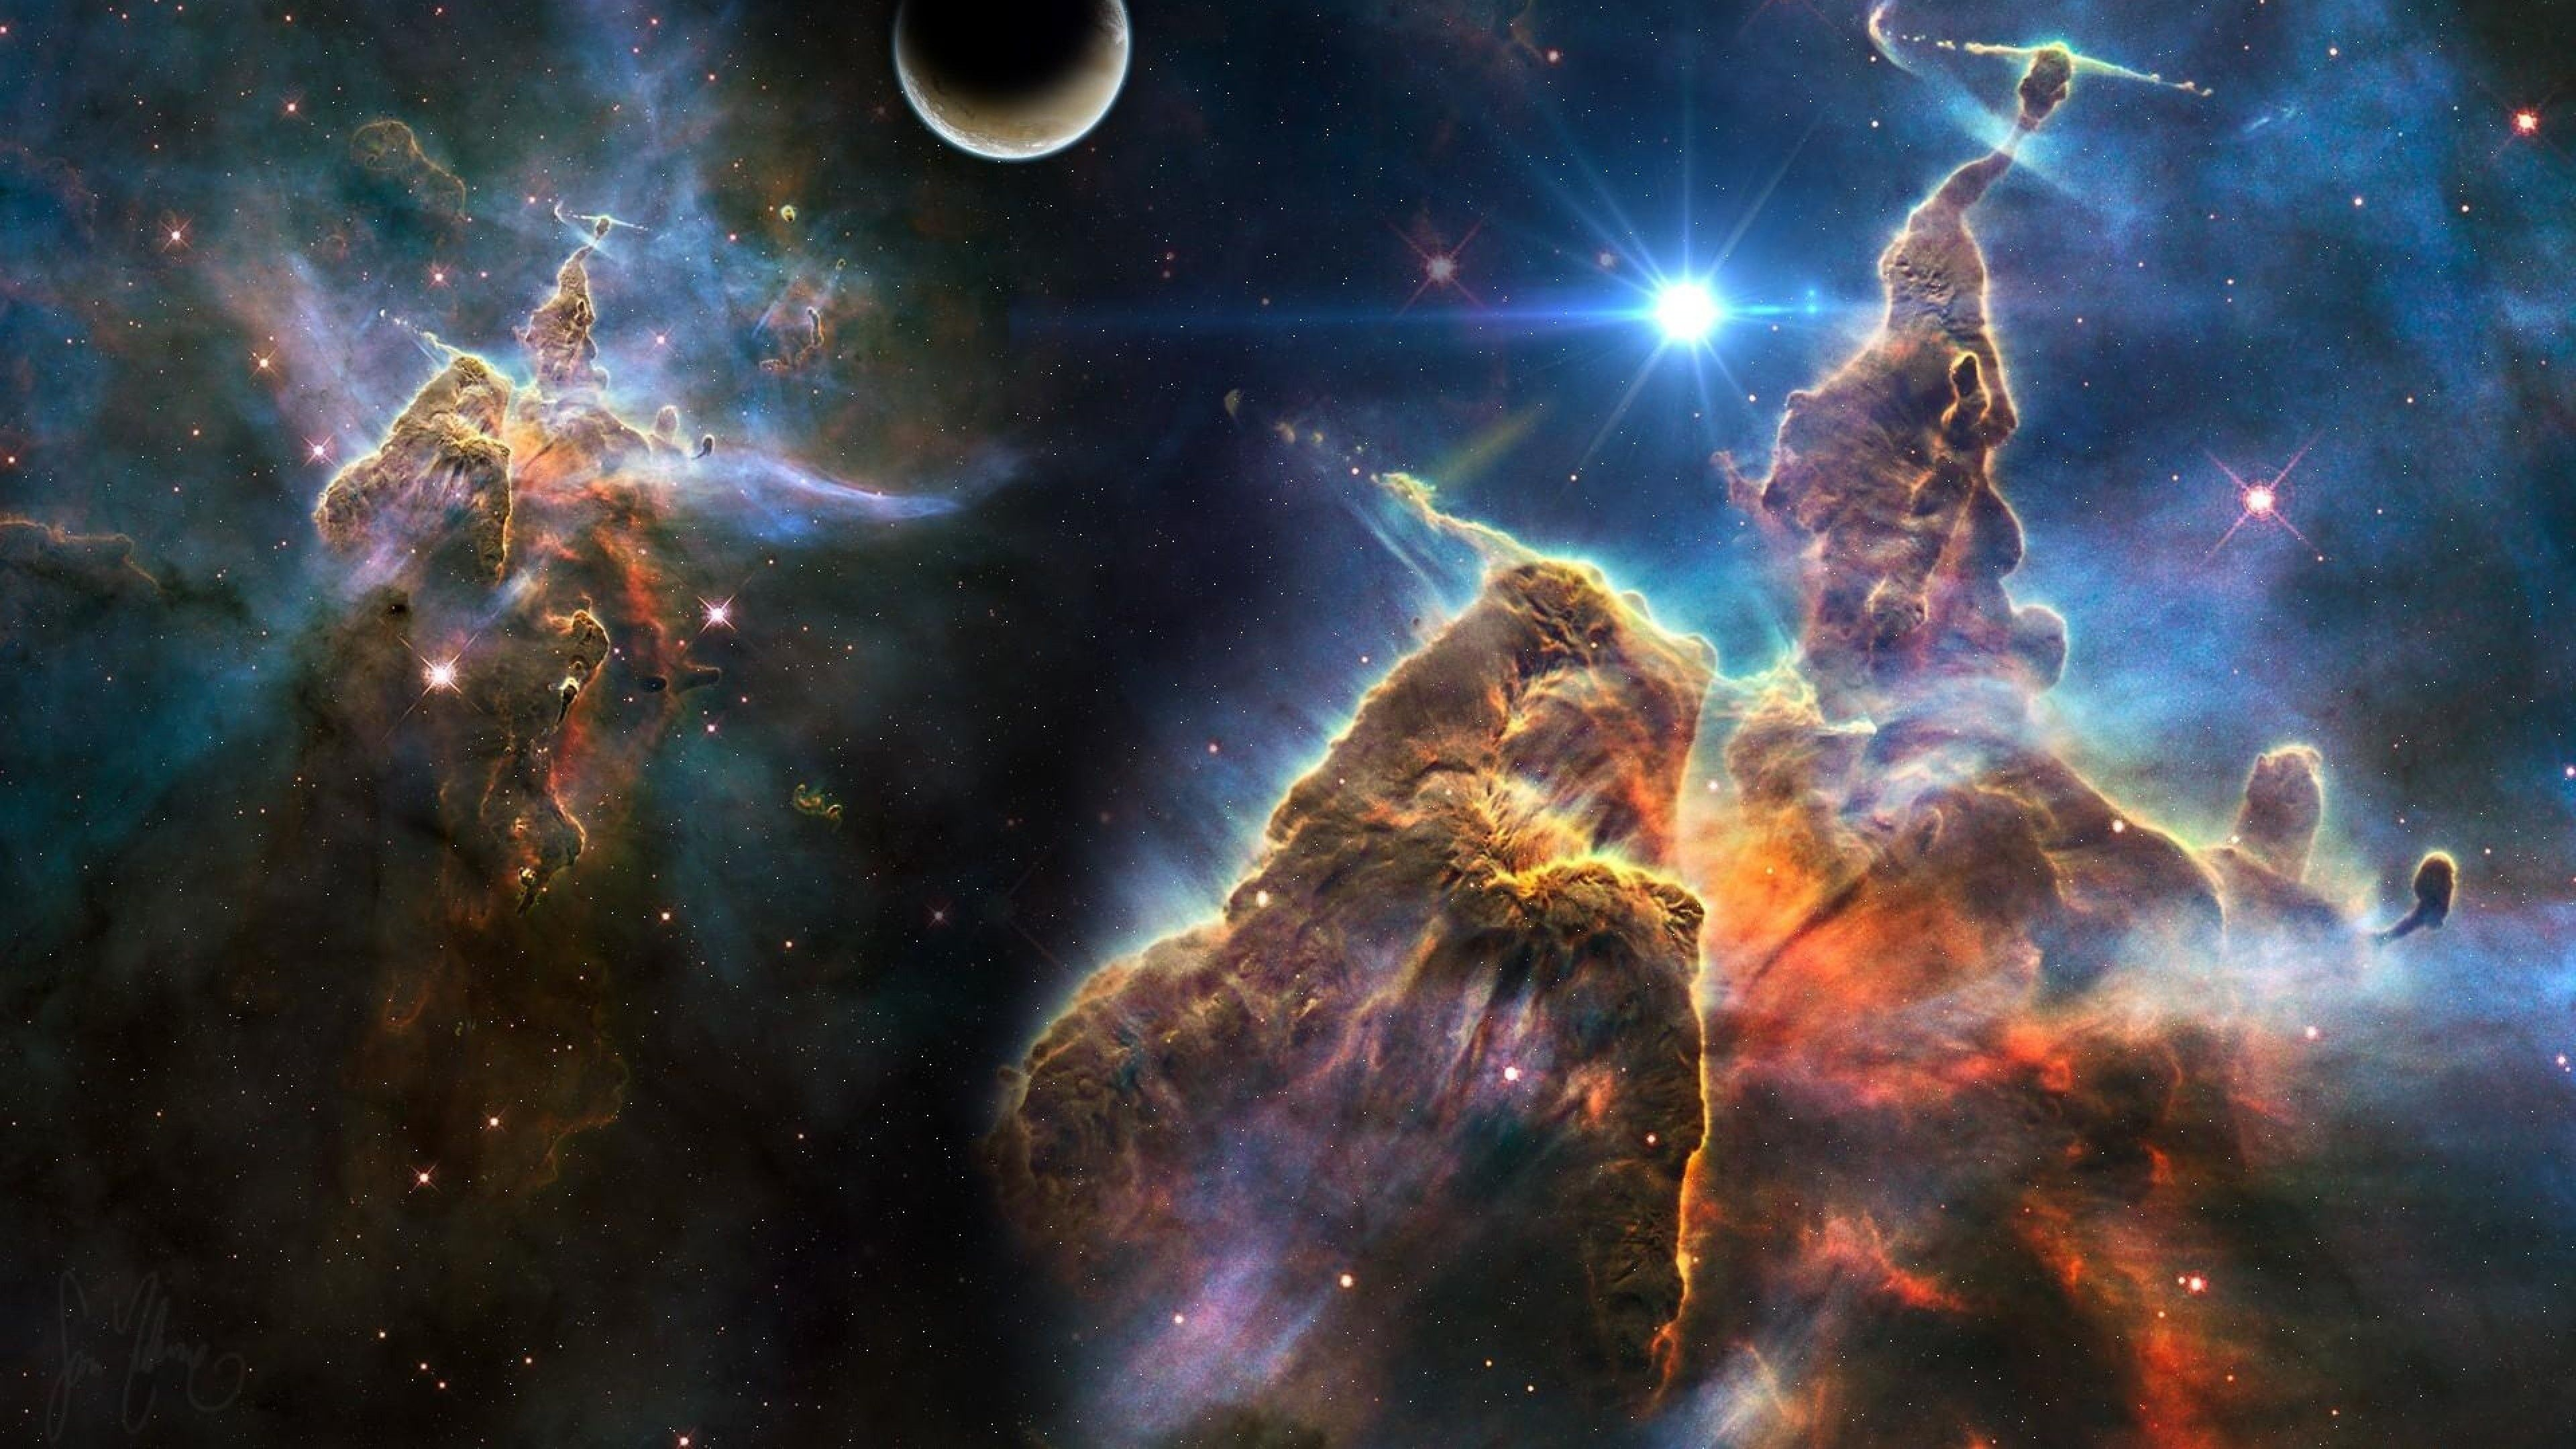 Download Wallpaper High Resolution Universe - 53b29c4364638261ff4a4f80f2f13ade  Pictures_65352.jpg